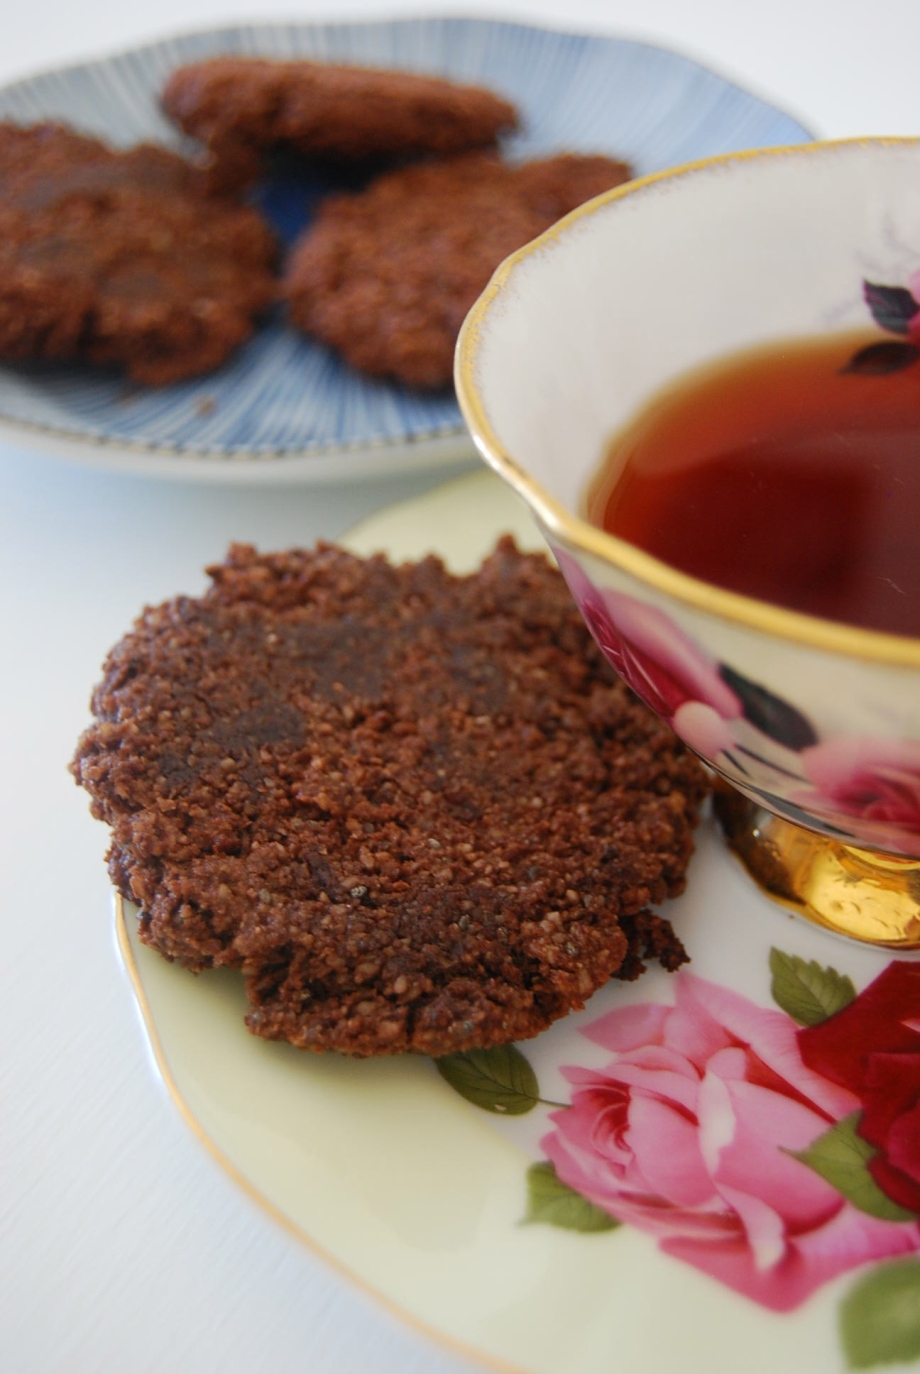 a gluten and dairy free chocolate cookie you can eat for breakfast